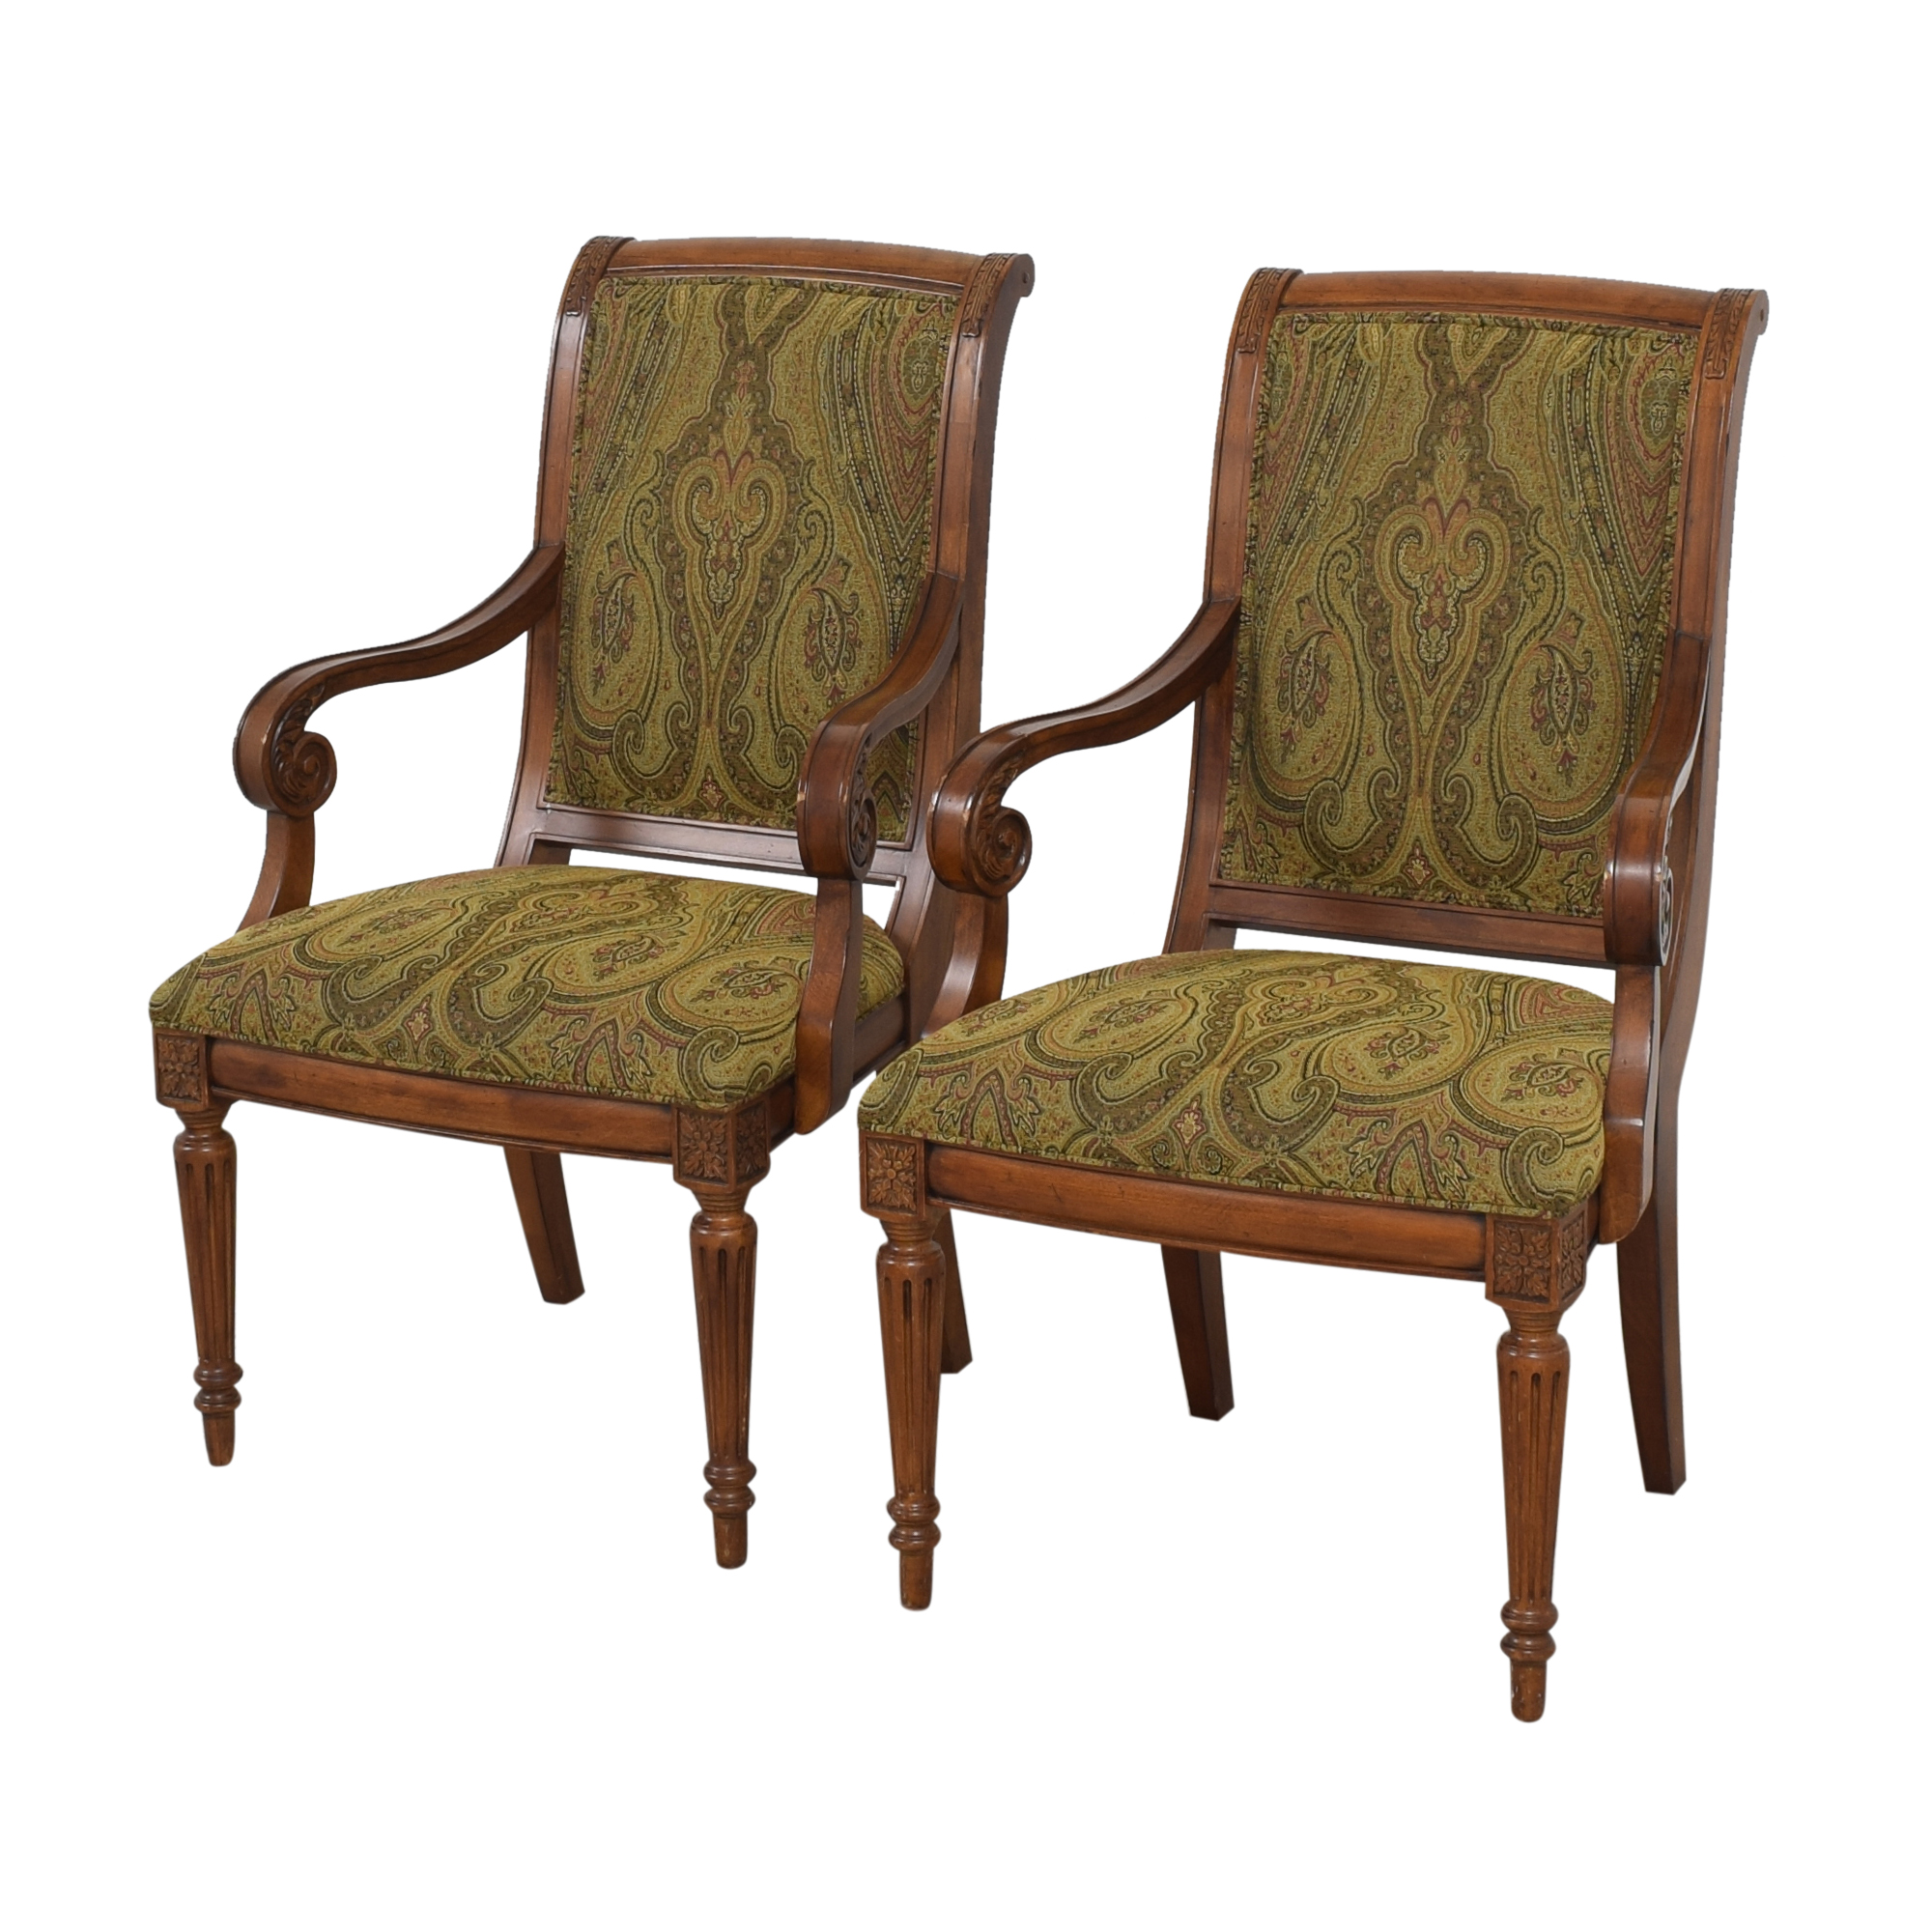 Ethan Allen Ethan Allen Adison Dining Arm Chairs ct